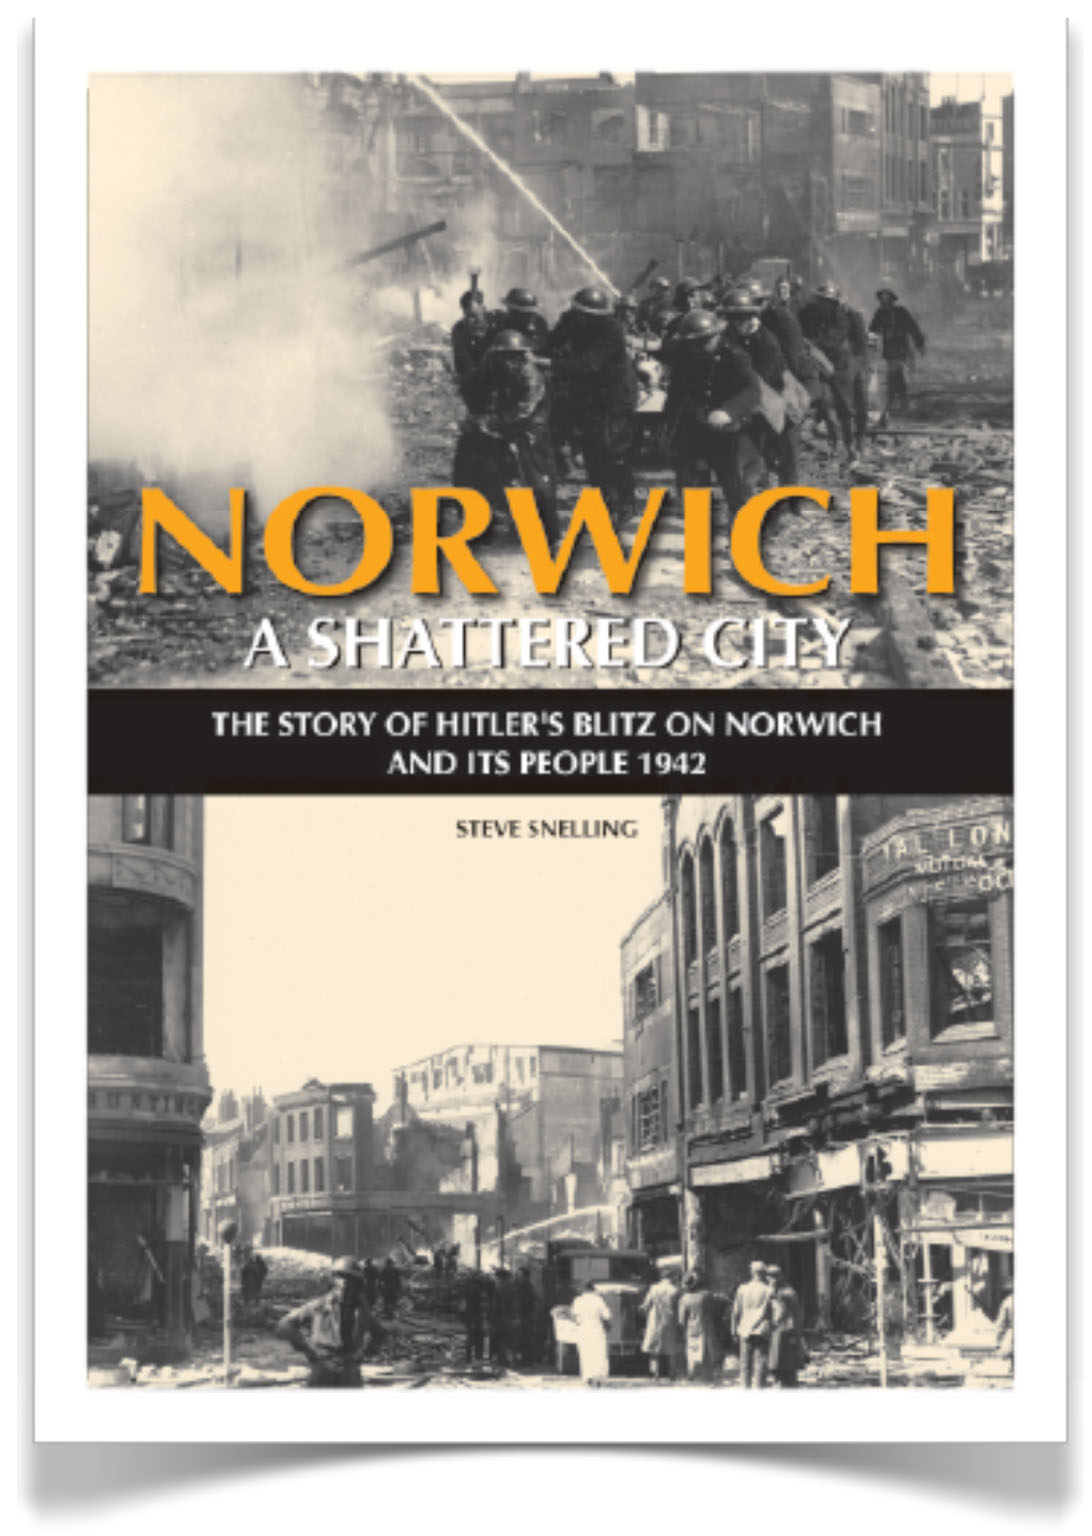 Norwich: A Shattered City by Steve Snelling